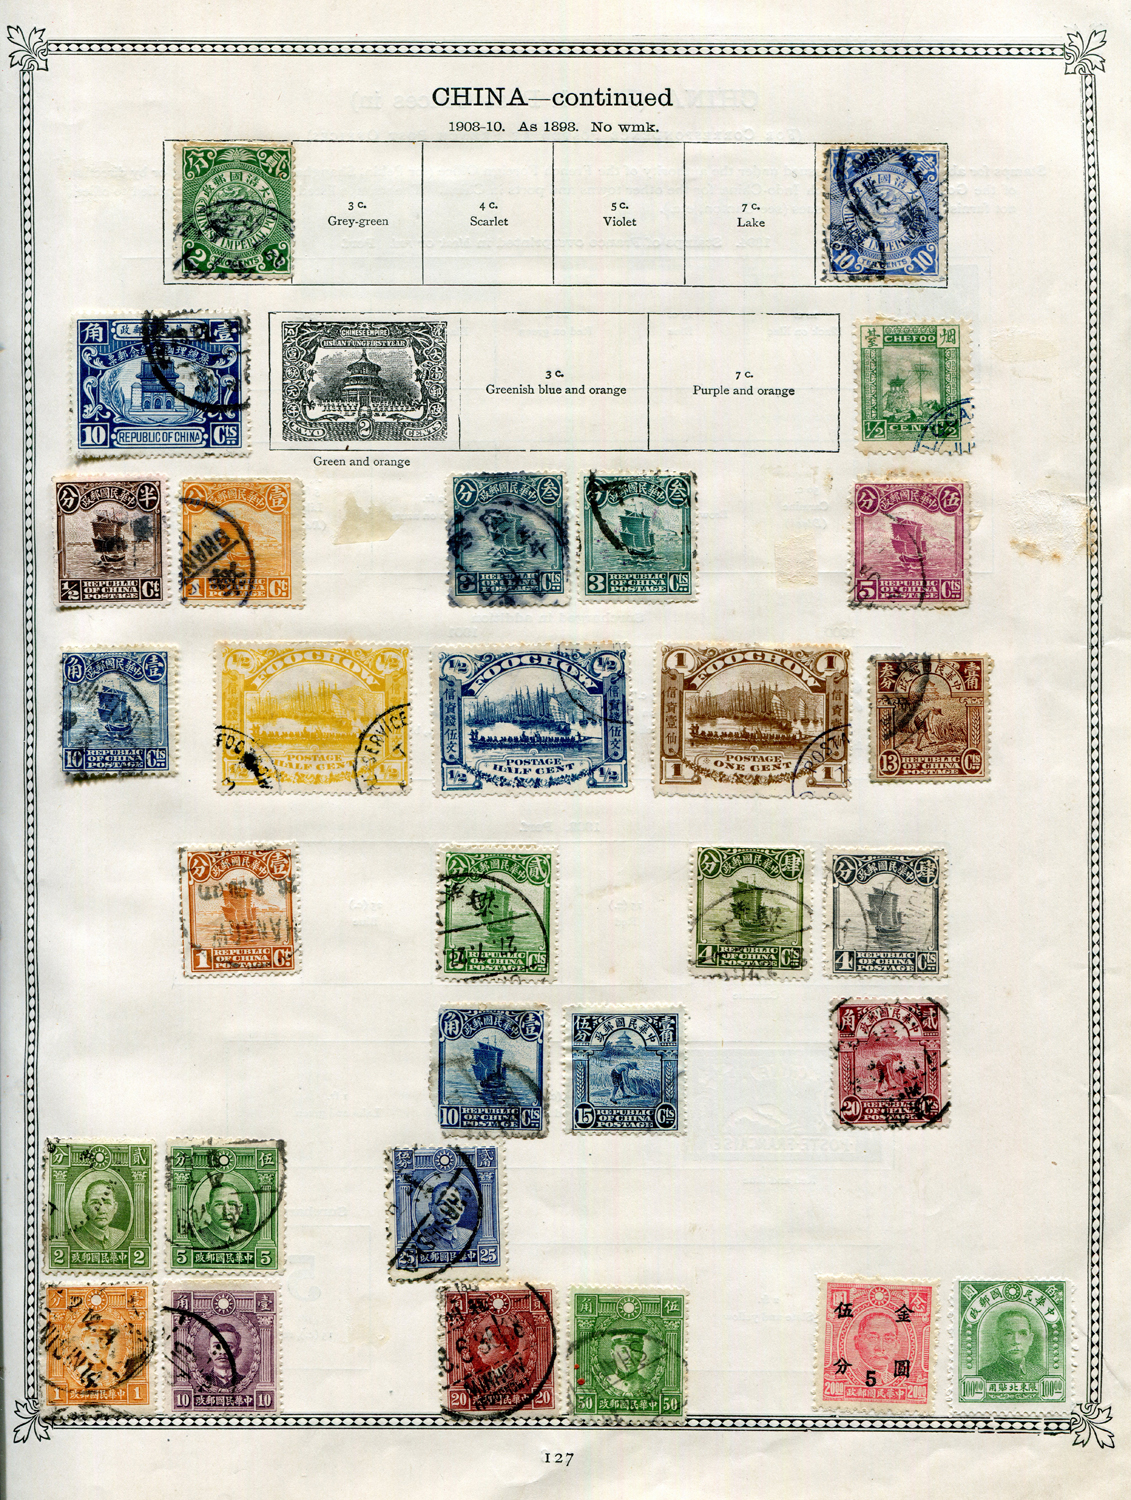 Lot 3024 - An Ideal stamp album 4th Edition 1912 with Brazil, France and Colonies, German States, Italy, Japan,